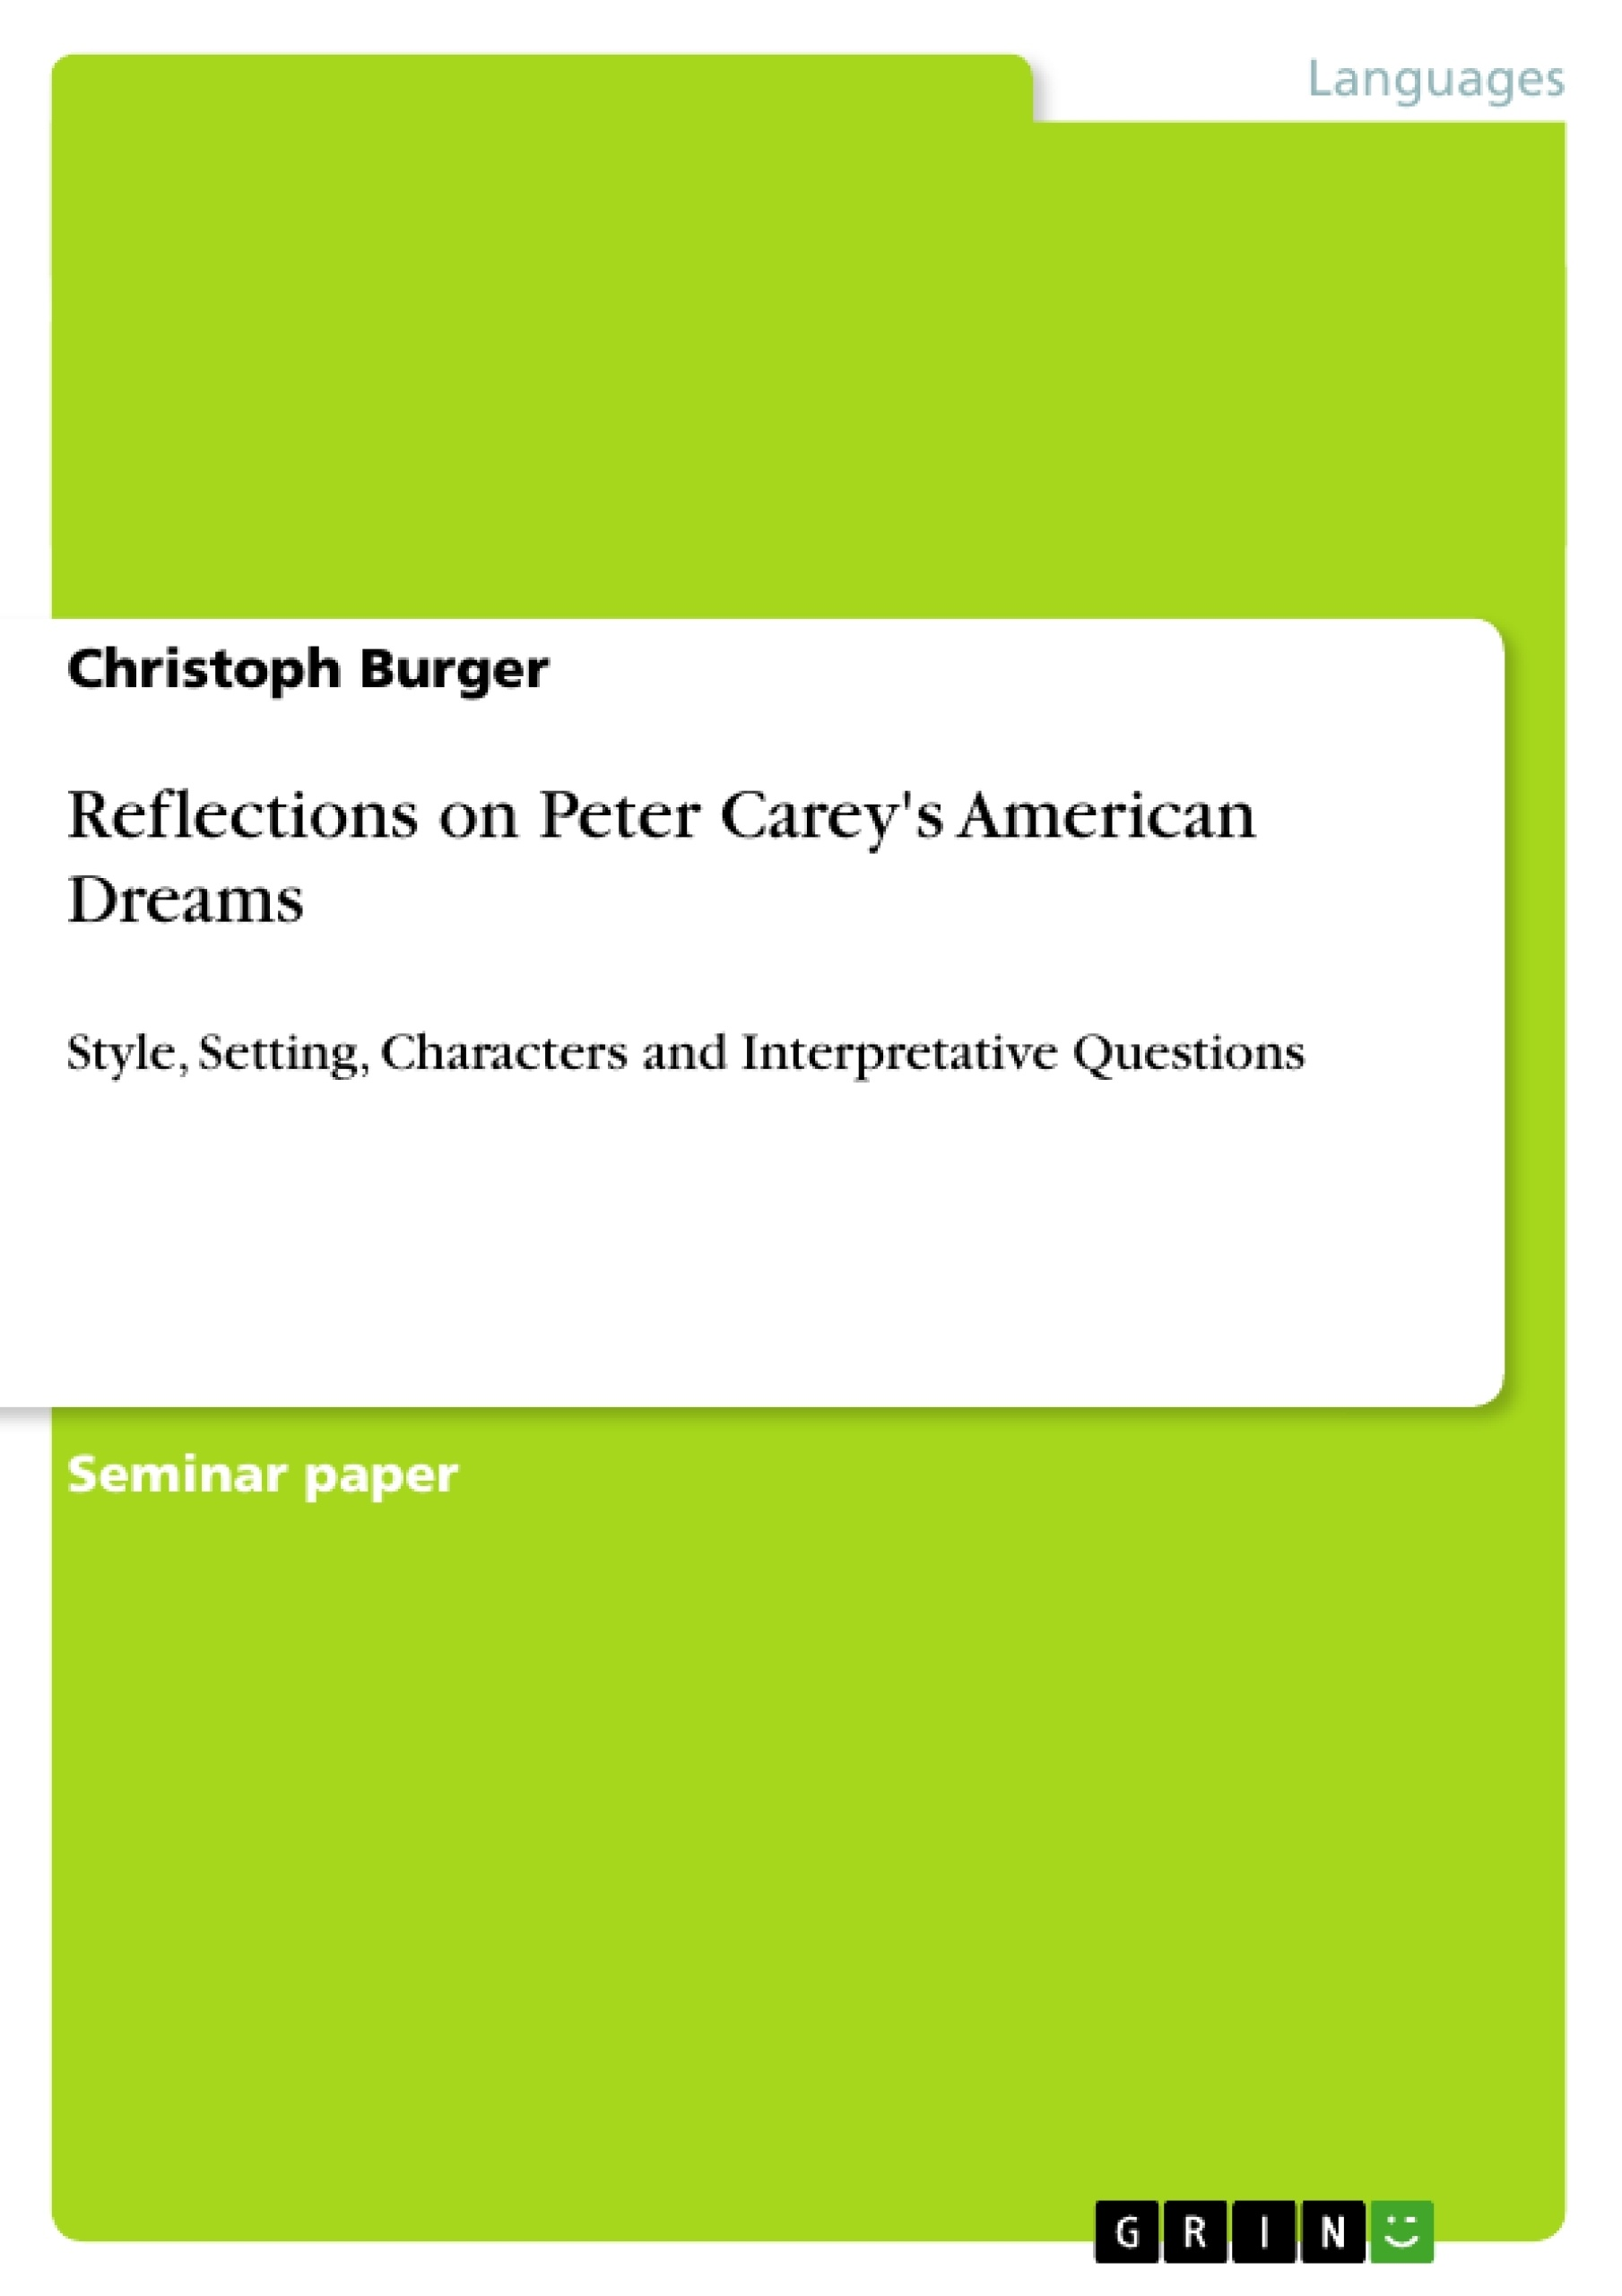 reflections on peter carey s american dreams publish your reflections on peter carey s american dreams publish your master s thesis bachelor s thesis essay or term paper